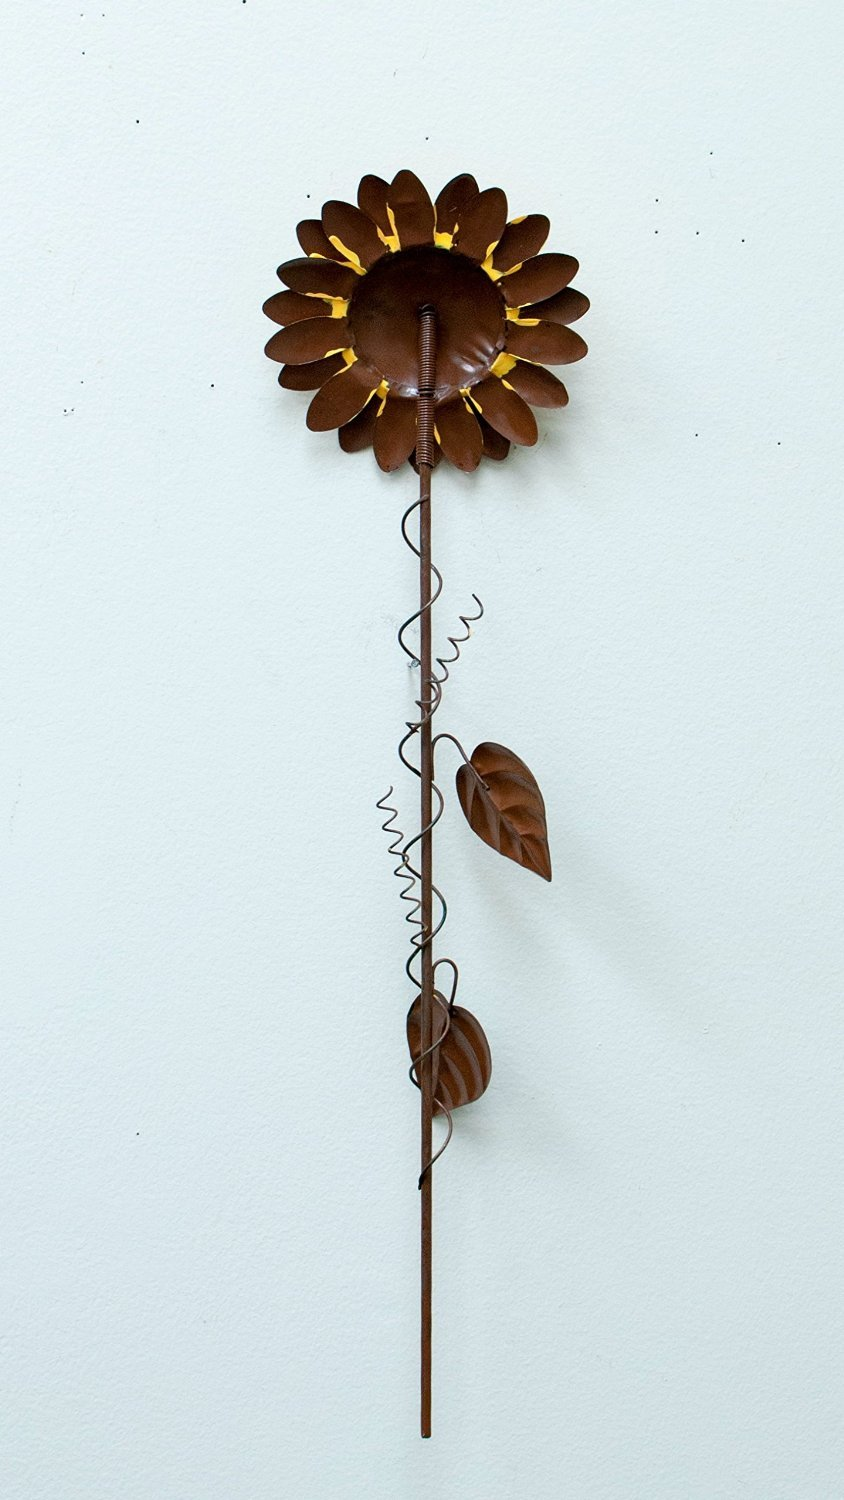 Grace Home Metal Sunflower Garden Stake Large Flower Patio Lawn Yard Stake Decor by Grace Home (Image #4)